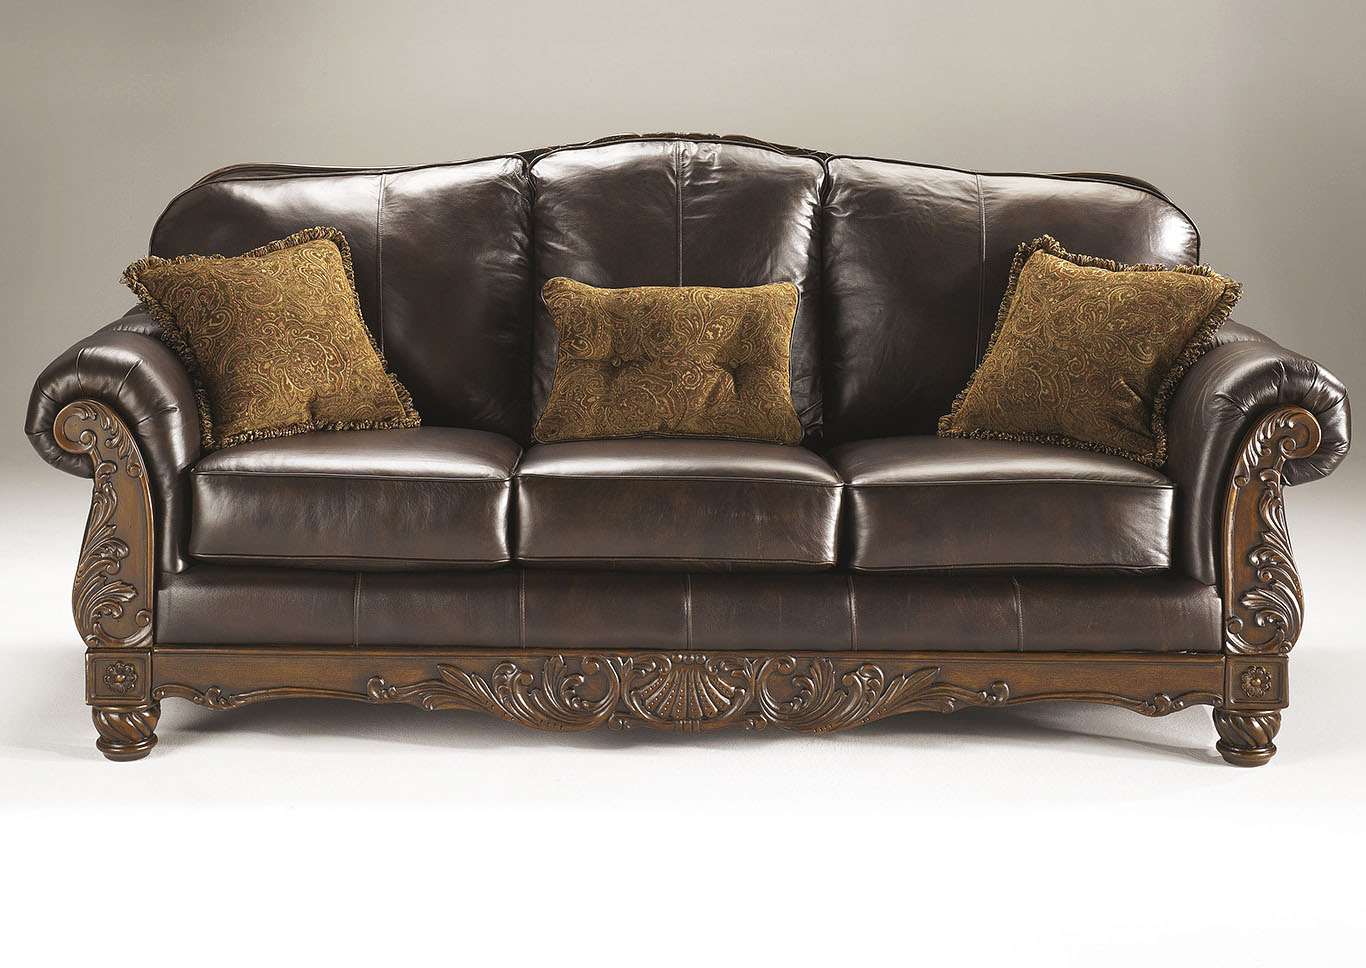 Austin 39 S Couch Potatoes Furniture Stores Austin Texas North Shore Dark Brown Sofa